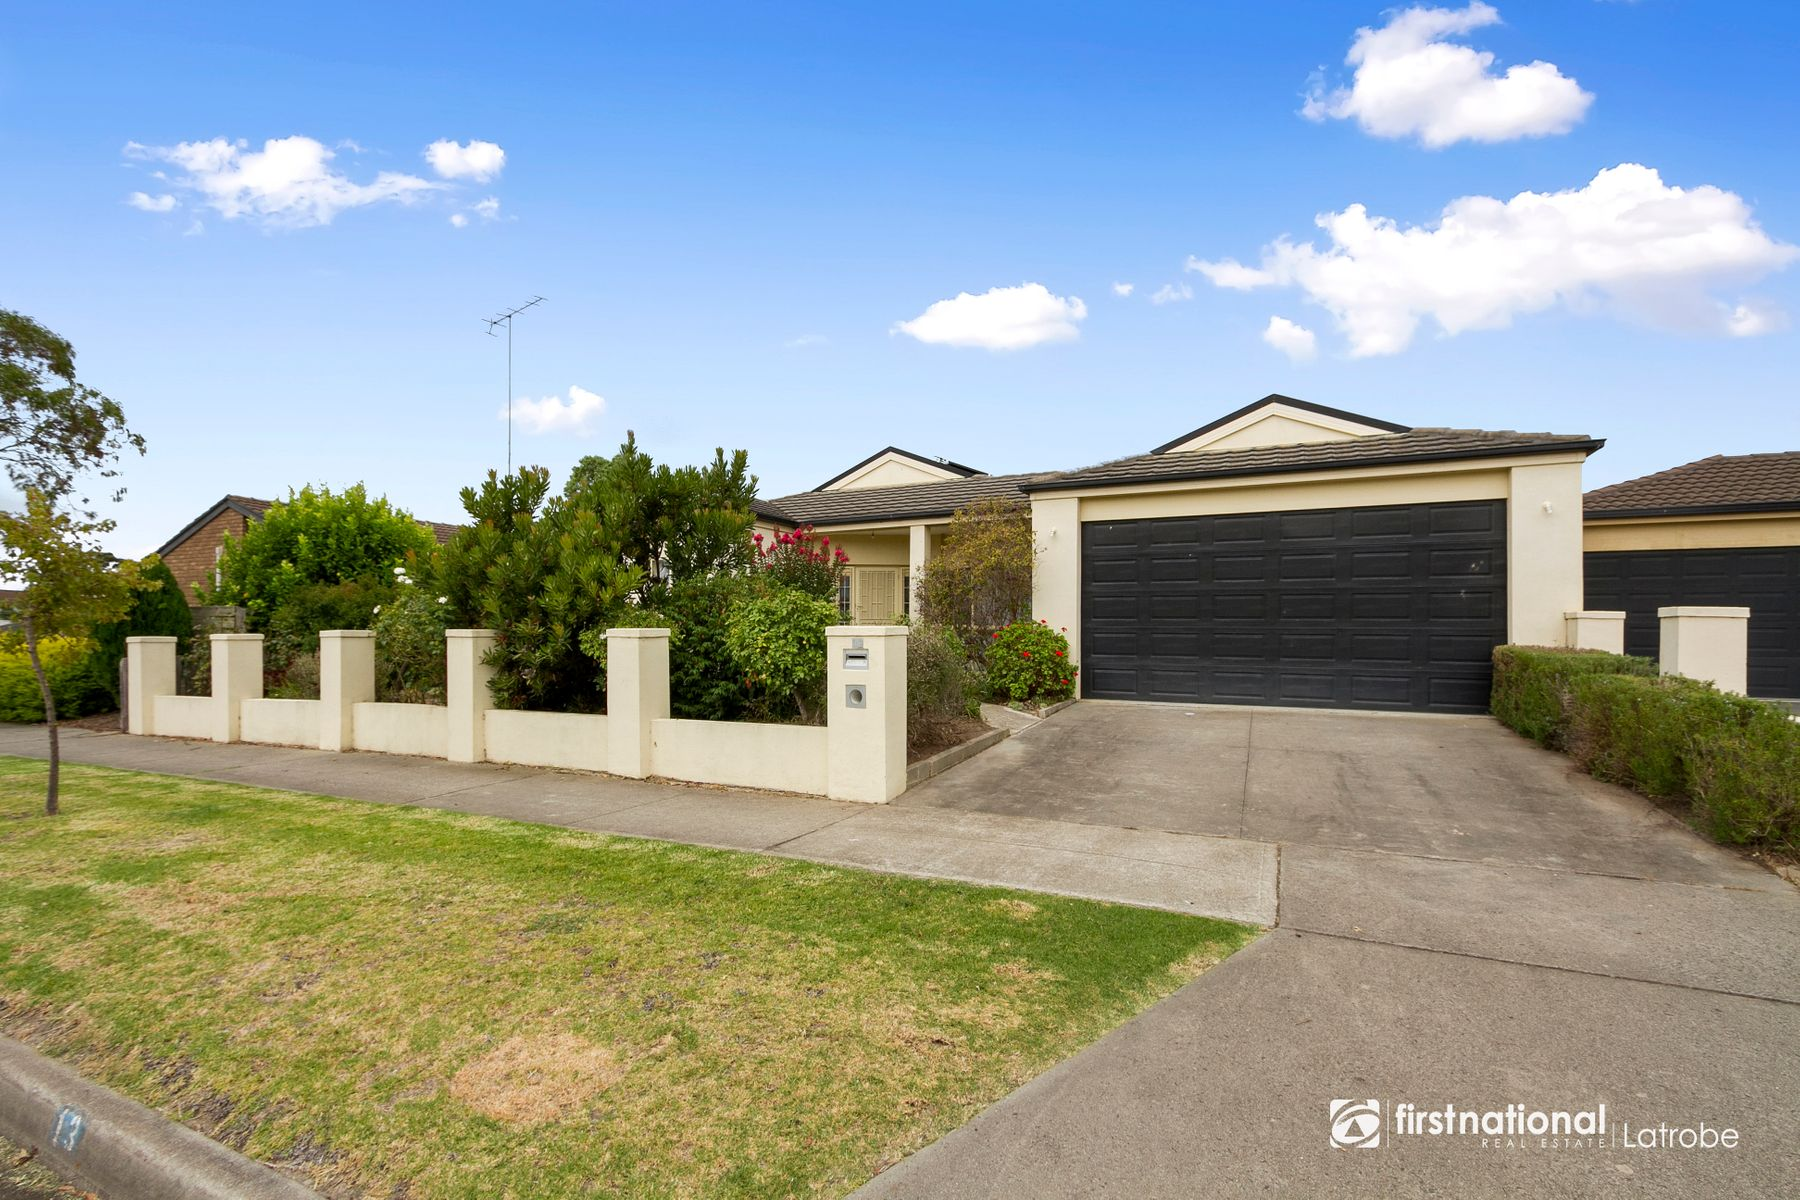 13 Mayfair Court, Traralgon, VIC 3844